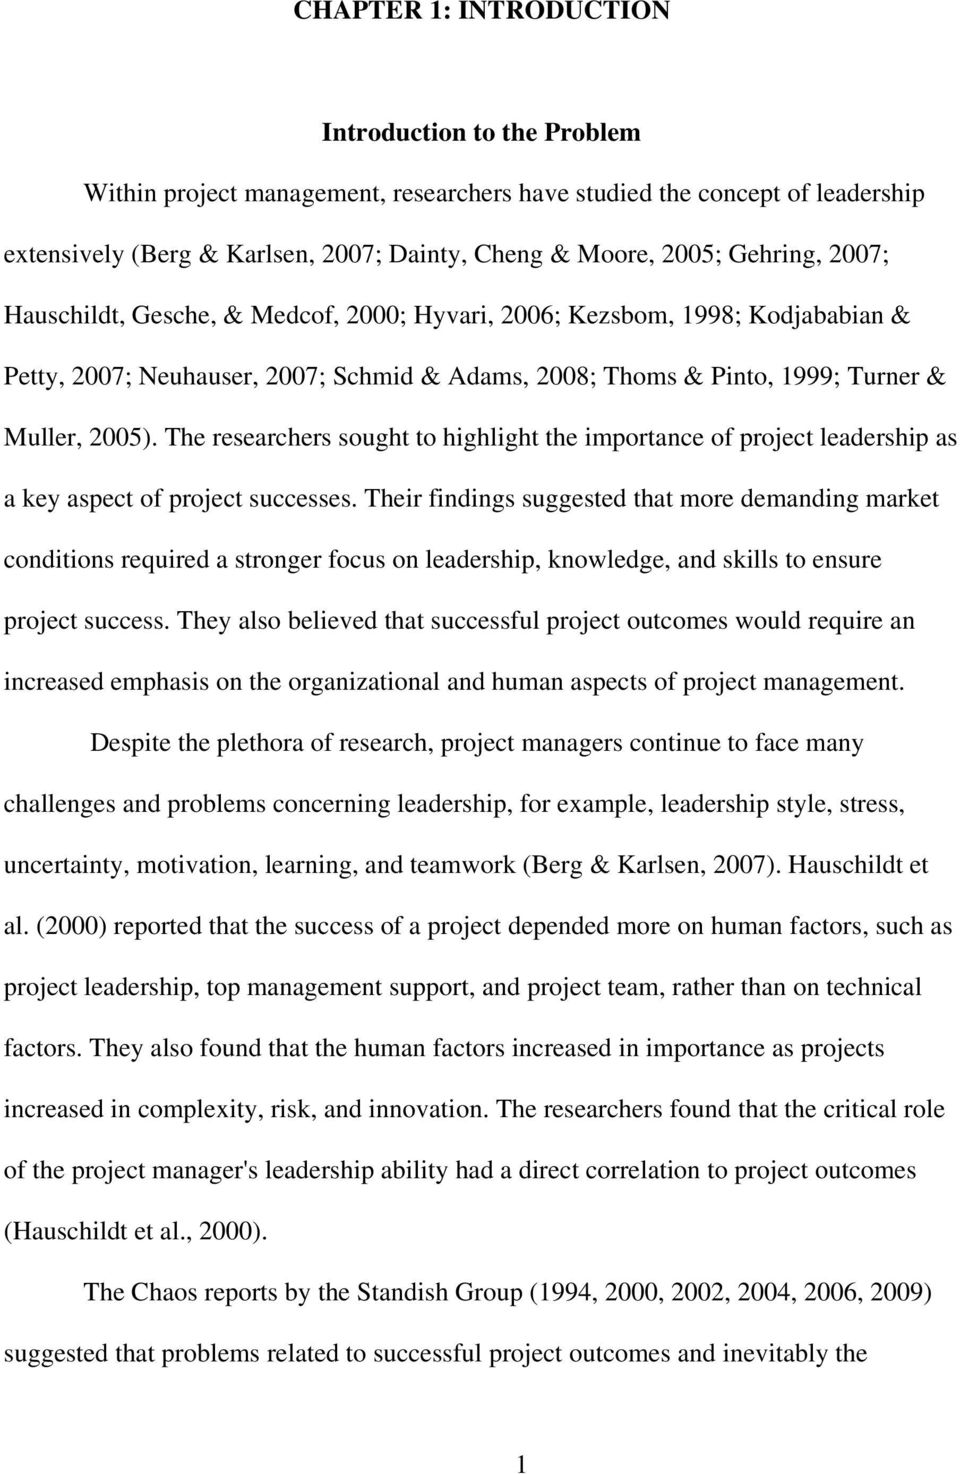 The researchers sought to highlight the importance of project leadership as a key aspect of project successes.